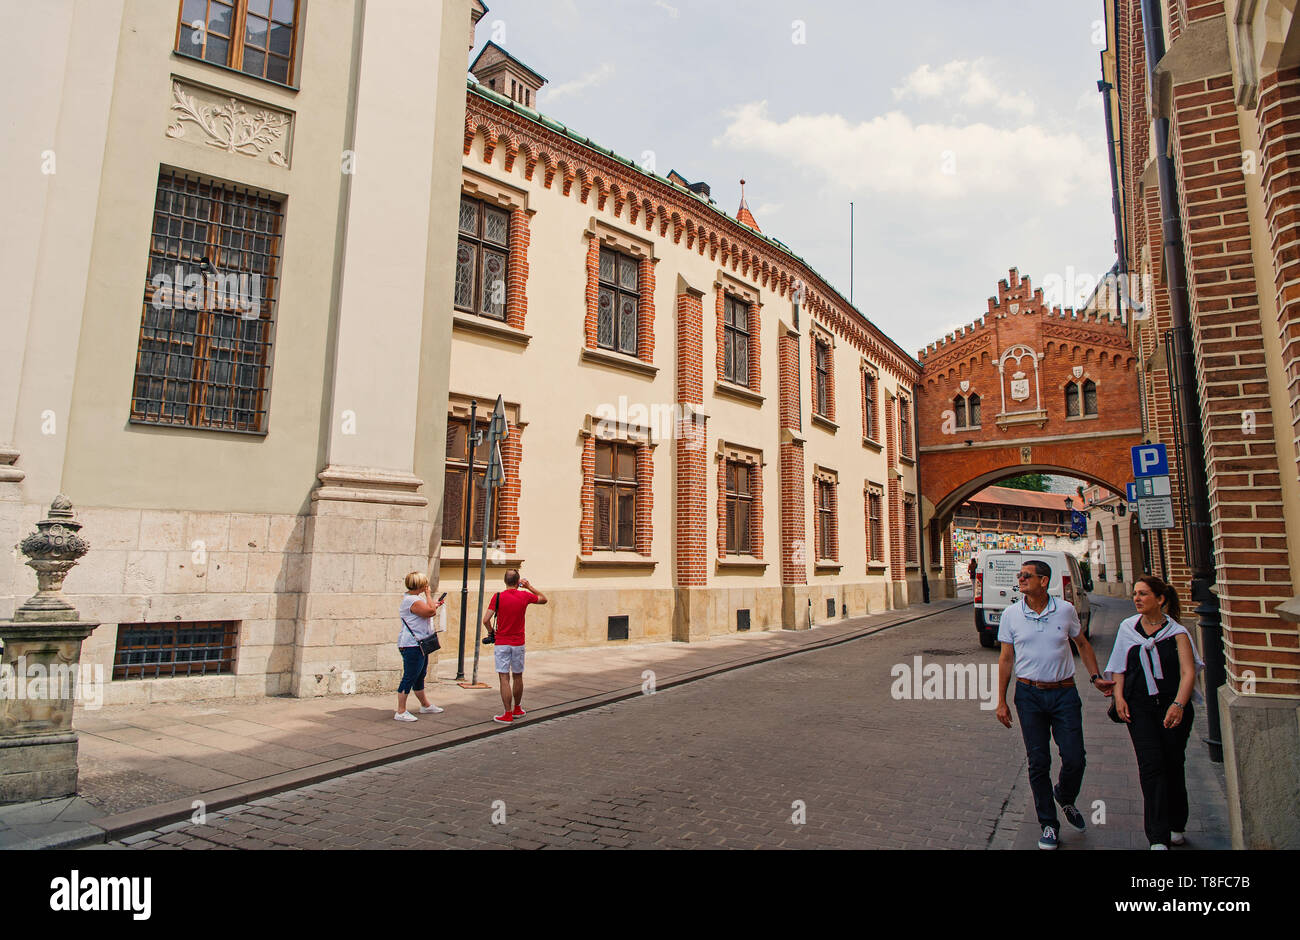 Krakow, Poland - June 04, 2016: people walk on street in city centre with old buildings on sunny day. Tourist destination, vacation concept - Stock Image